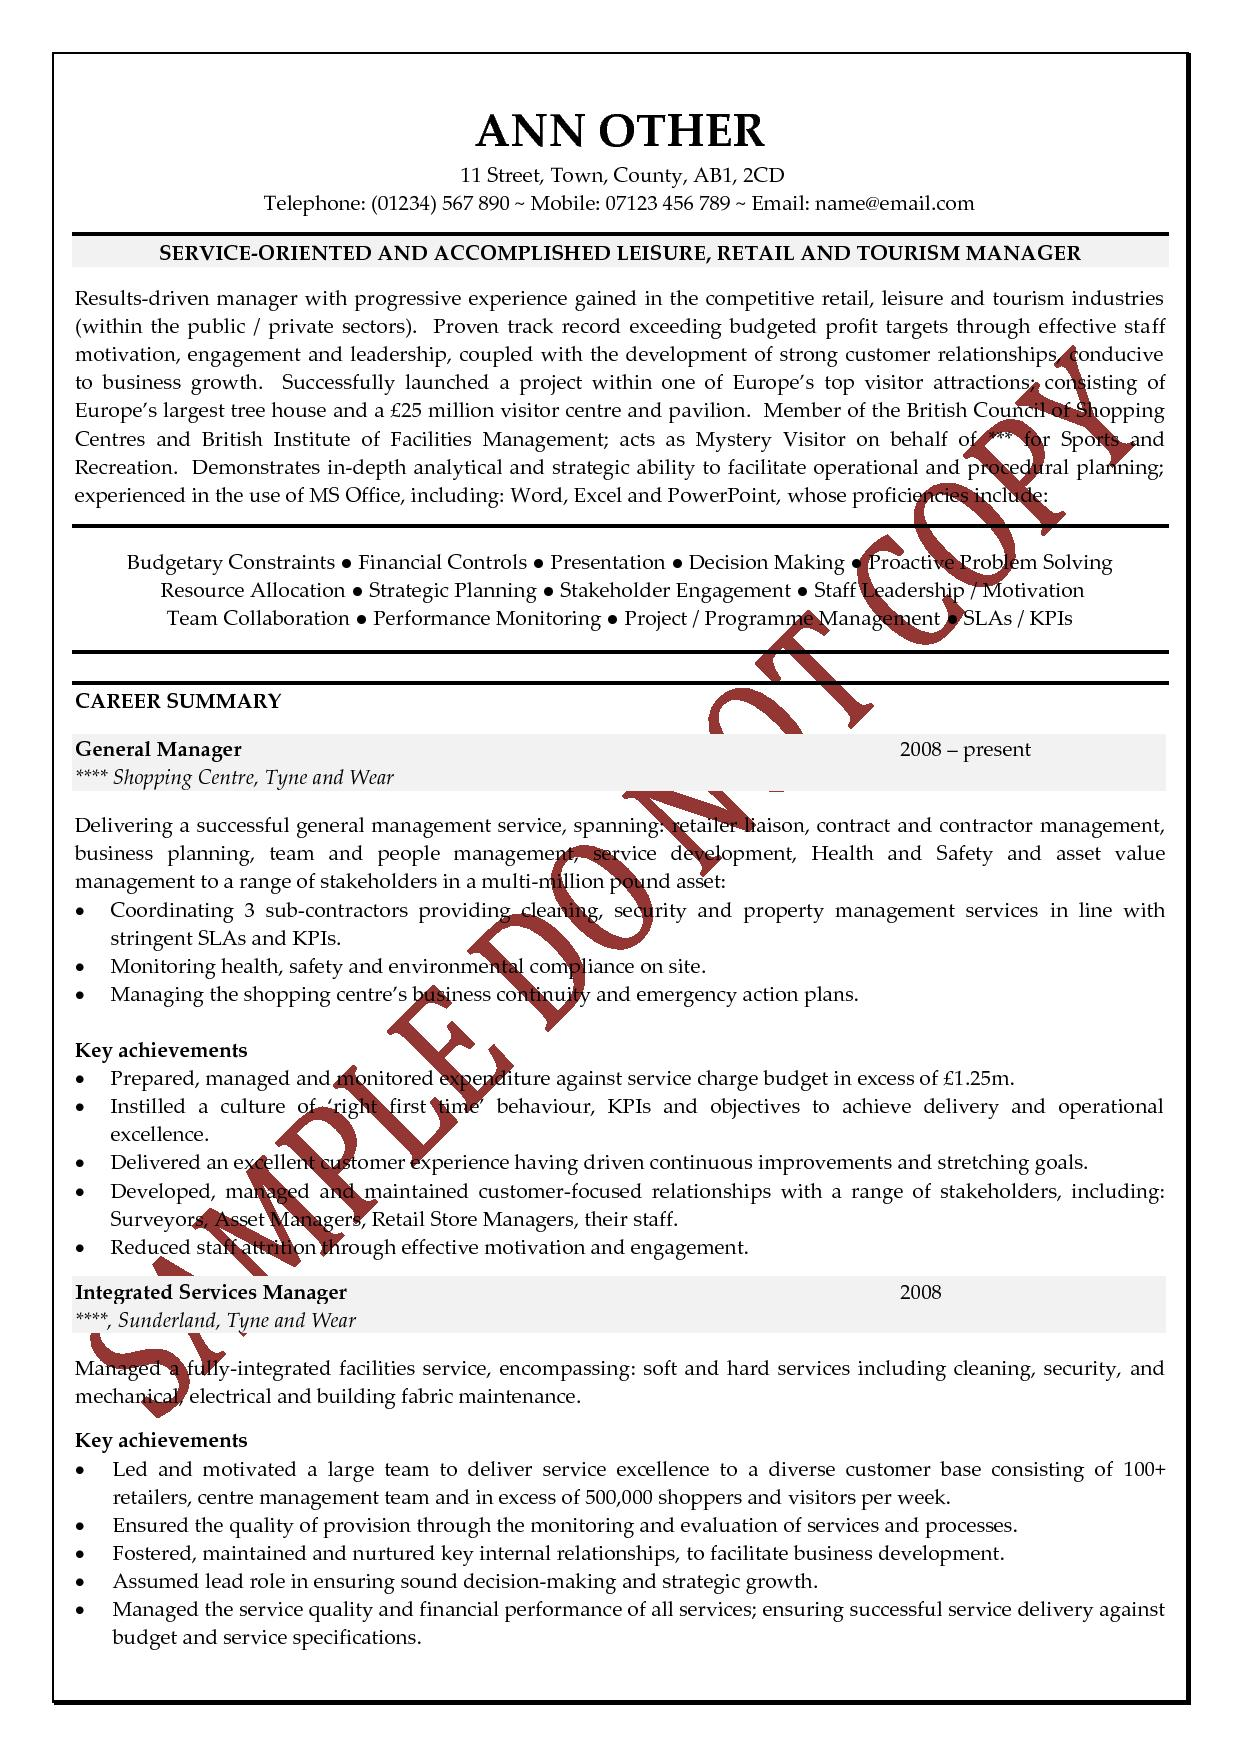 resume critique services template resume critique services